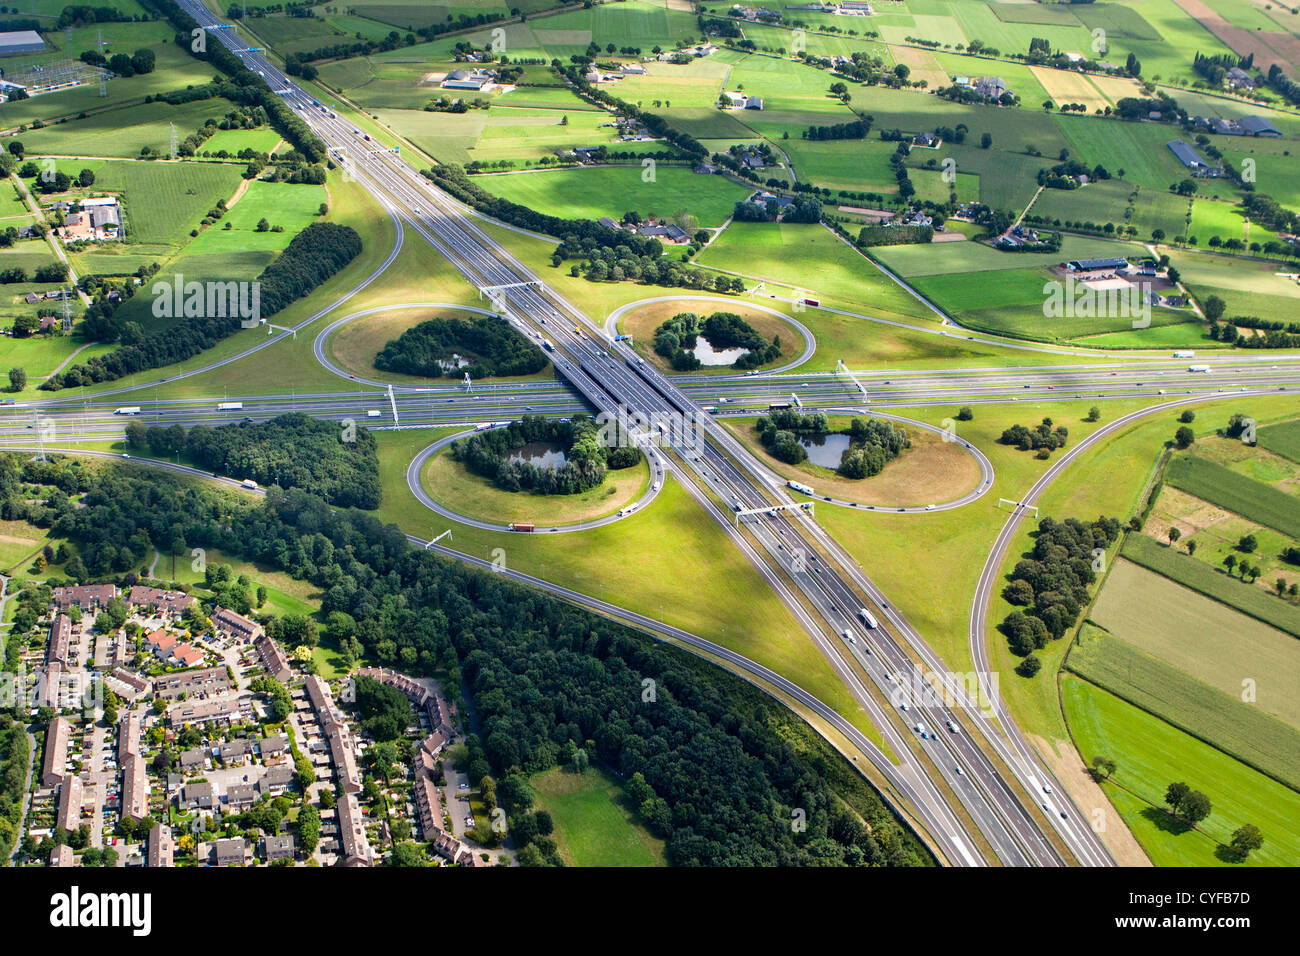 The Netherlands, Apeldoorn, Highway crossing A1 and A50 called Beekbergen  Aerial. - Stock Image